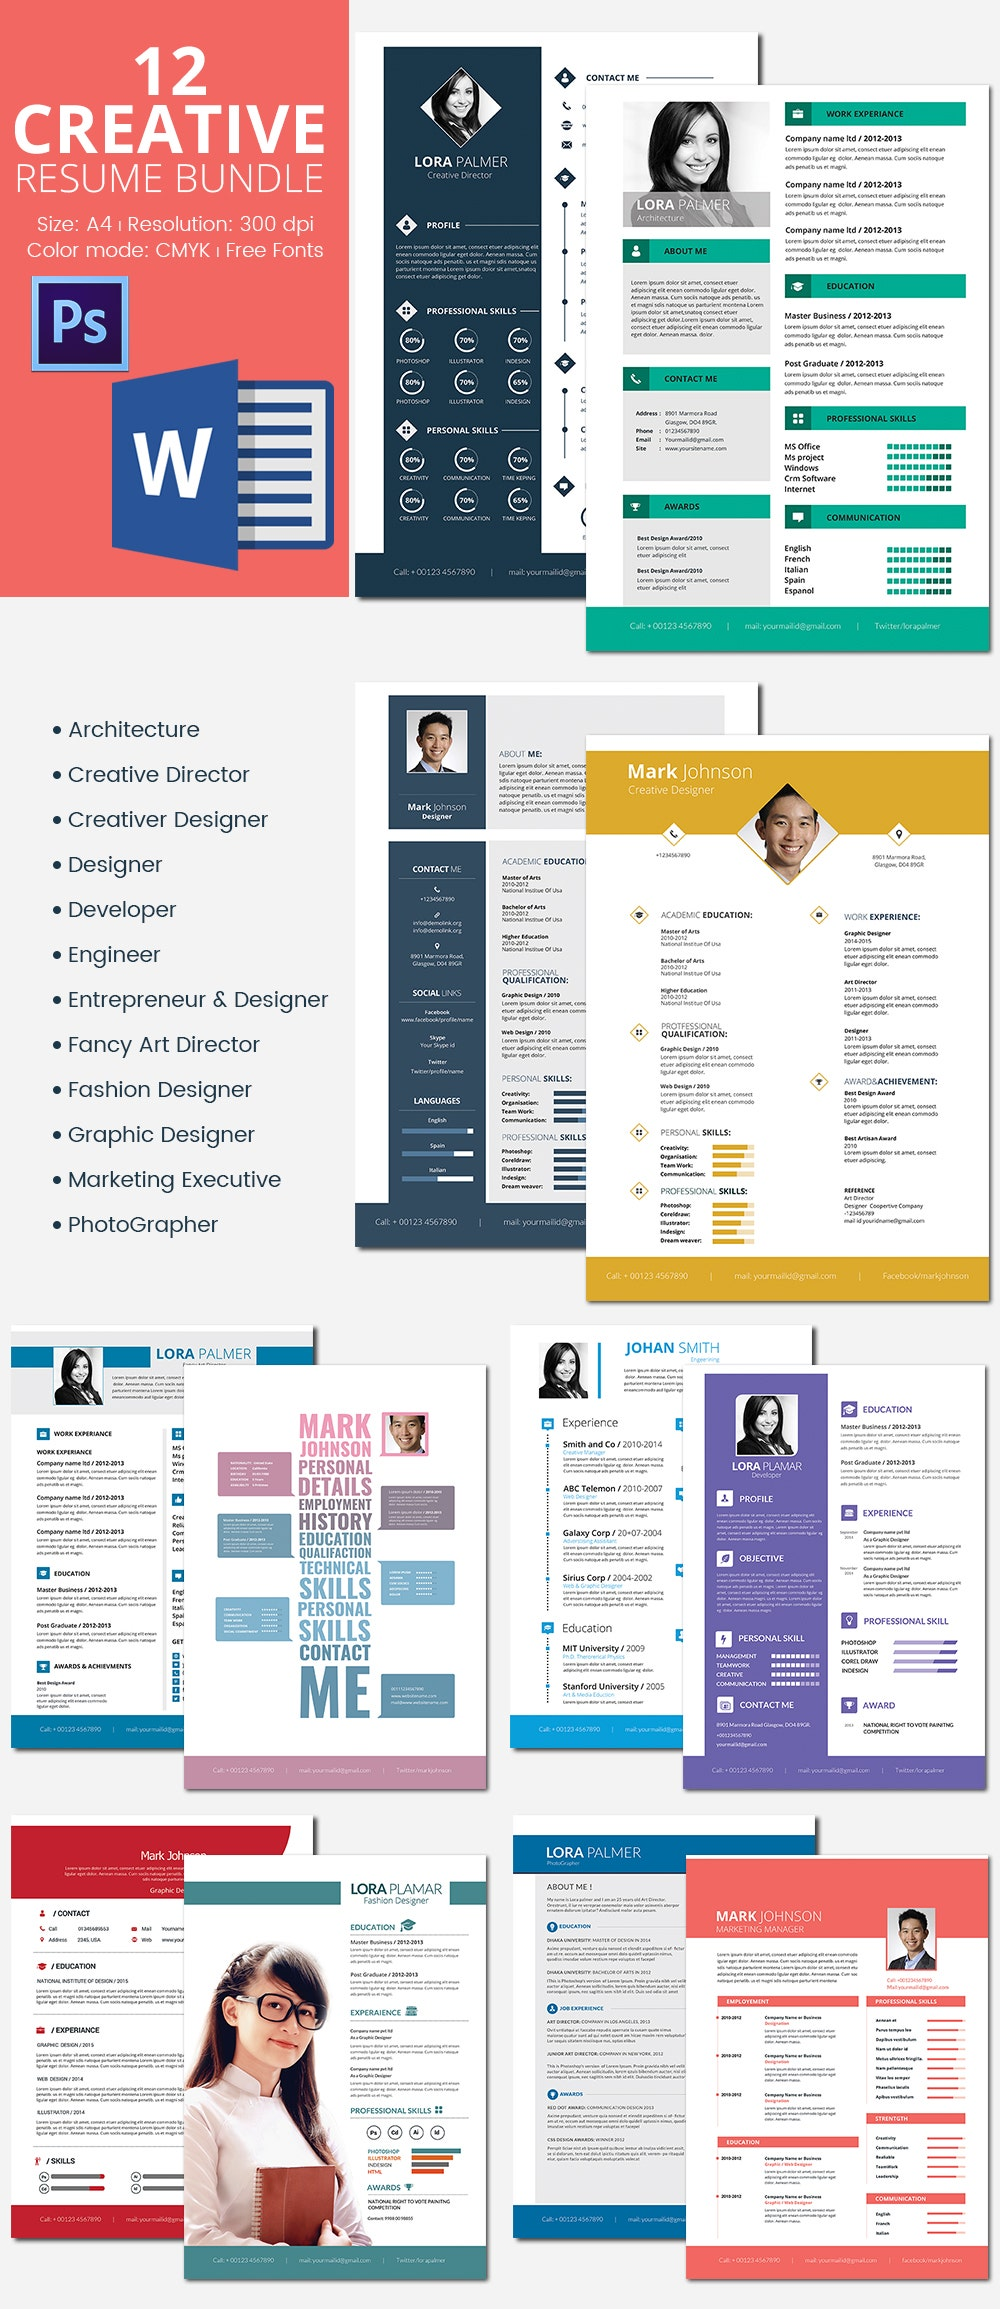 12 creative resume bundle only for 25 - Graphic Resume Templates Free